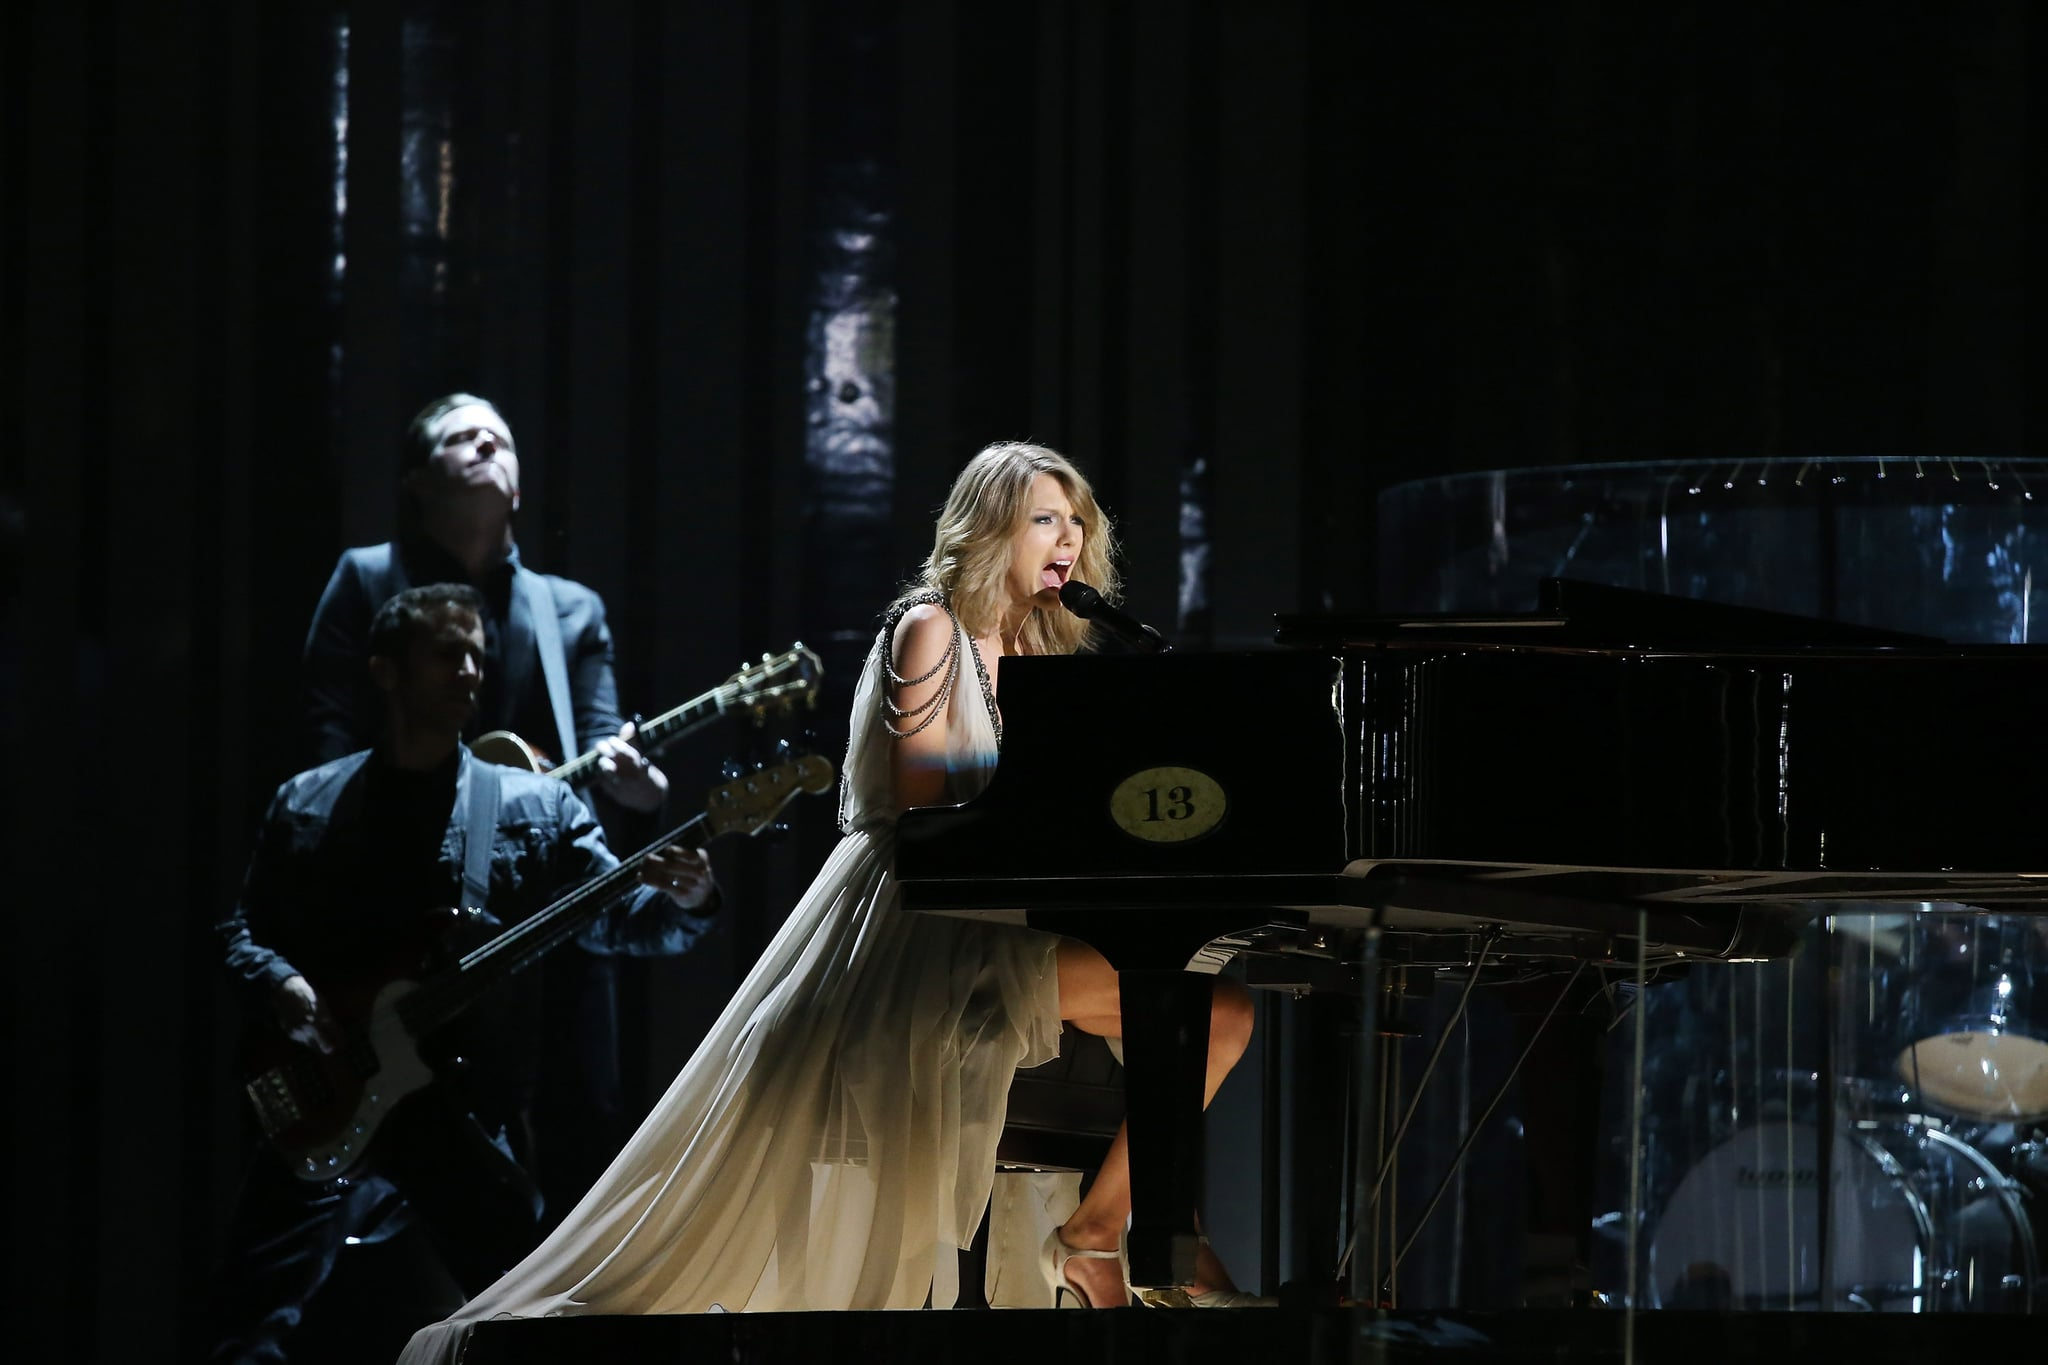 LOS ANGELES, CA - JANUARY 26:  Taylor Swift performs onstage during the 56th GRAMMY Awards held at Staples Center on January 26, 2014 in Los Angeles, California.  (Photo by Michael Tran/FilmMagic)